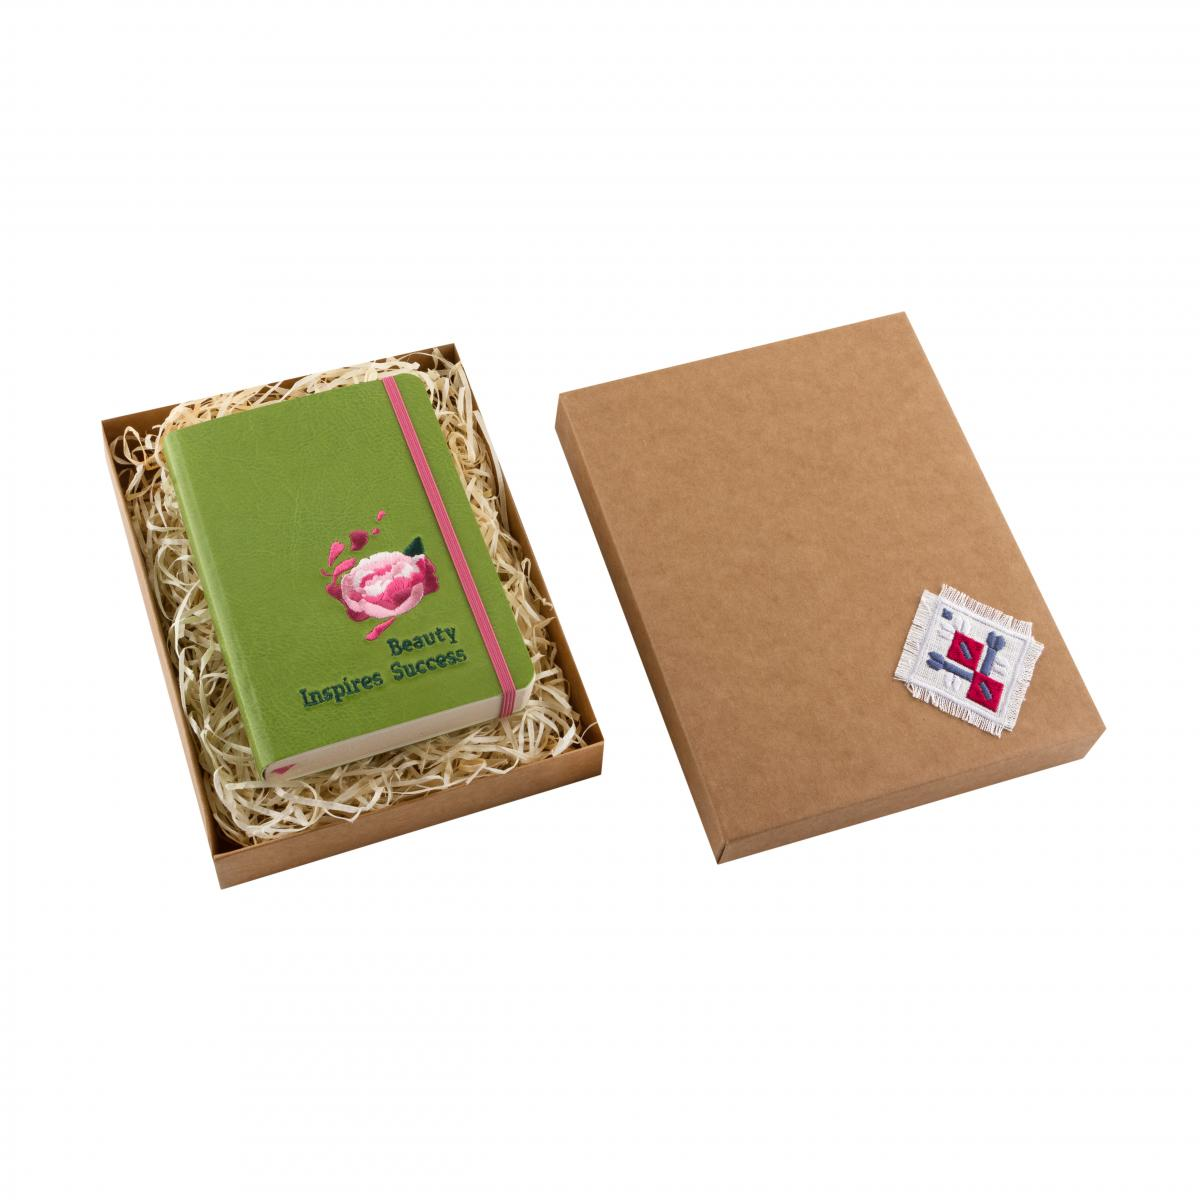 Eco-leather notebook with embroidery Beauty inspires success, green. Photo №2. | Narodnyi dim Ukraine